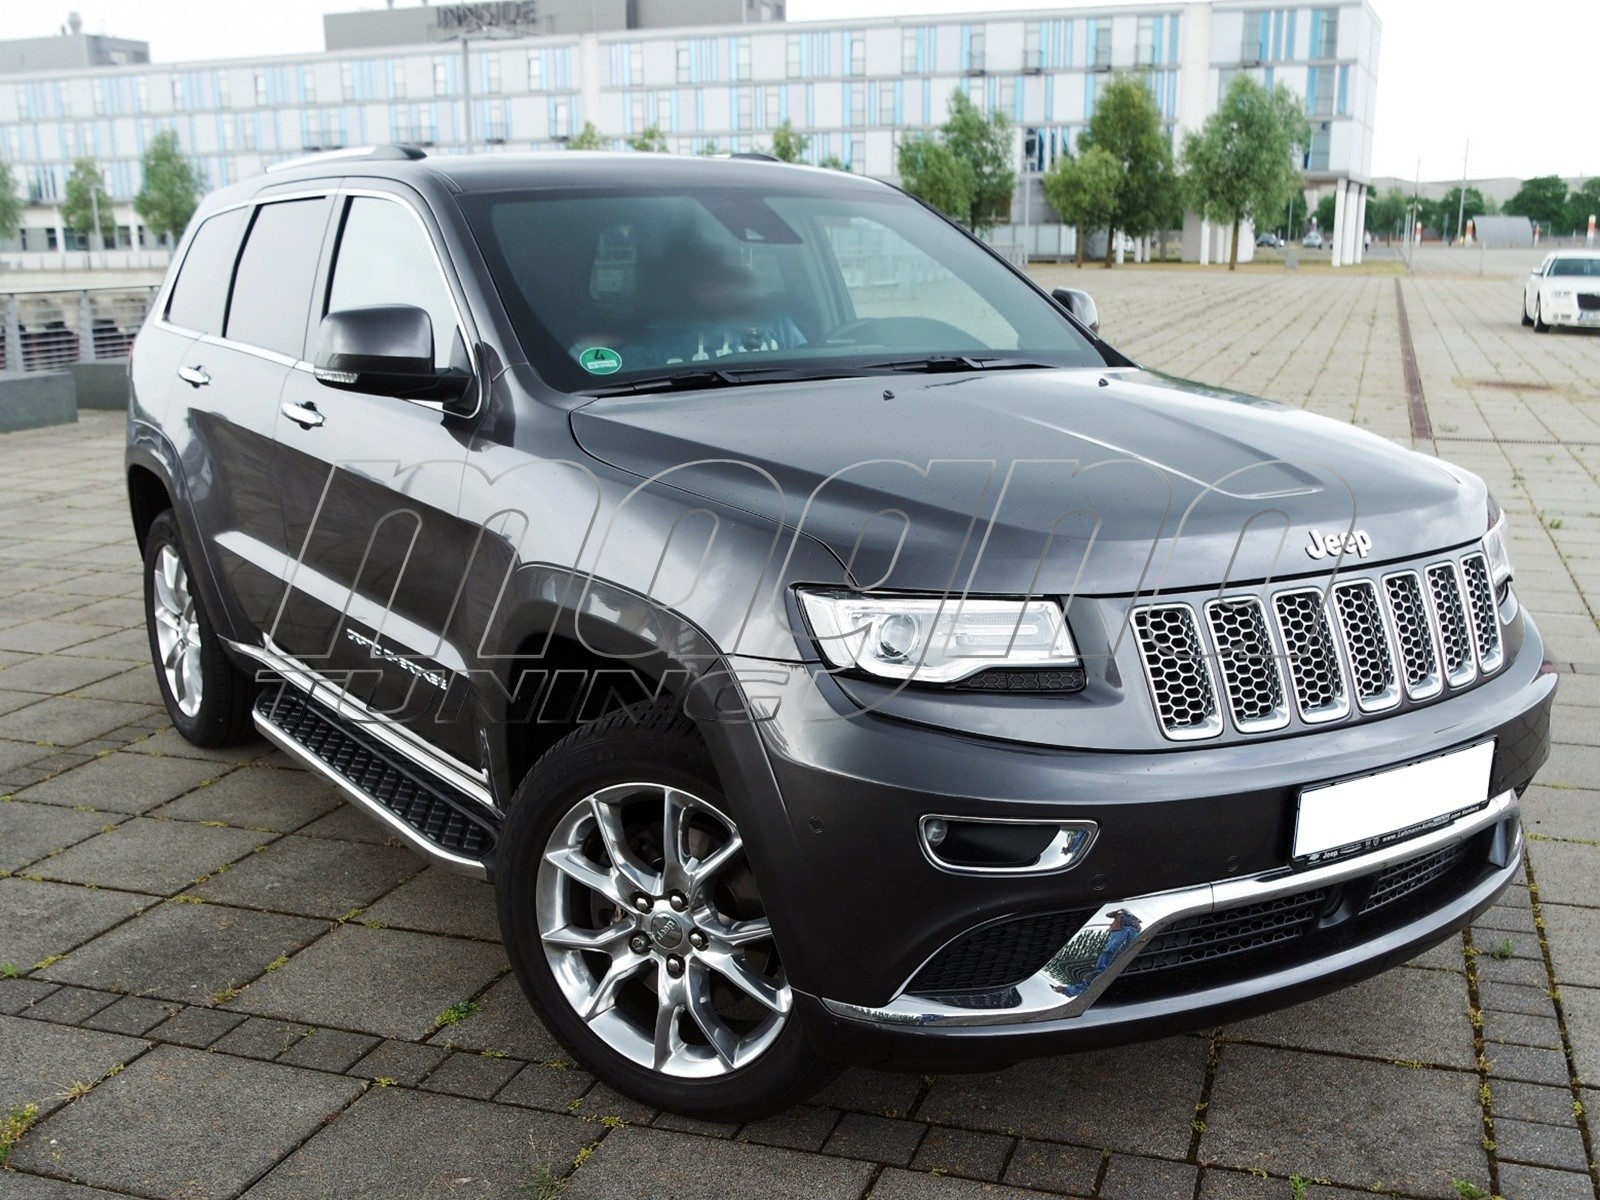 jeep grand cherokee wk2 helios trittbretter. Black Bedroom Furniture Sets. Home Design Ideas